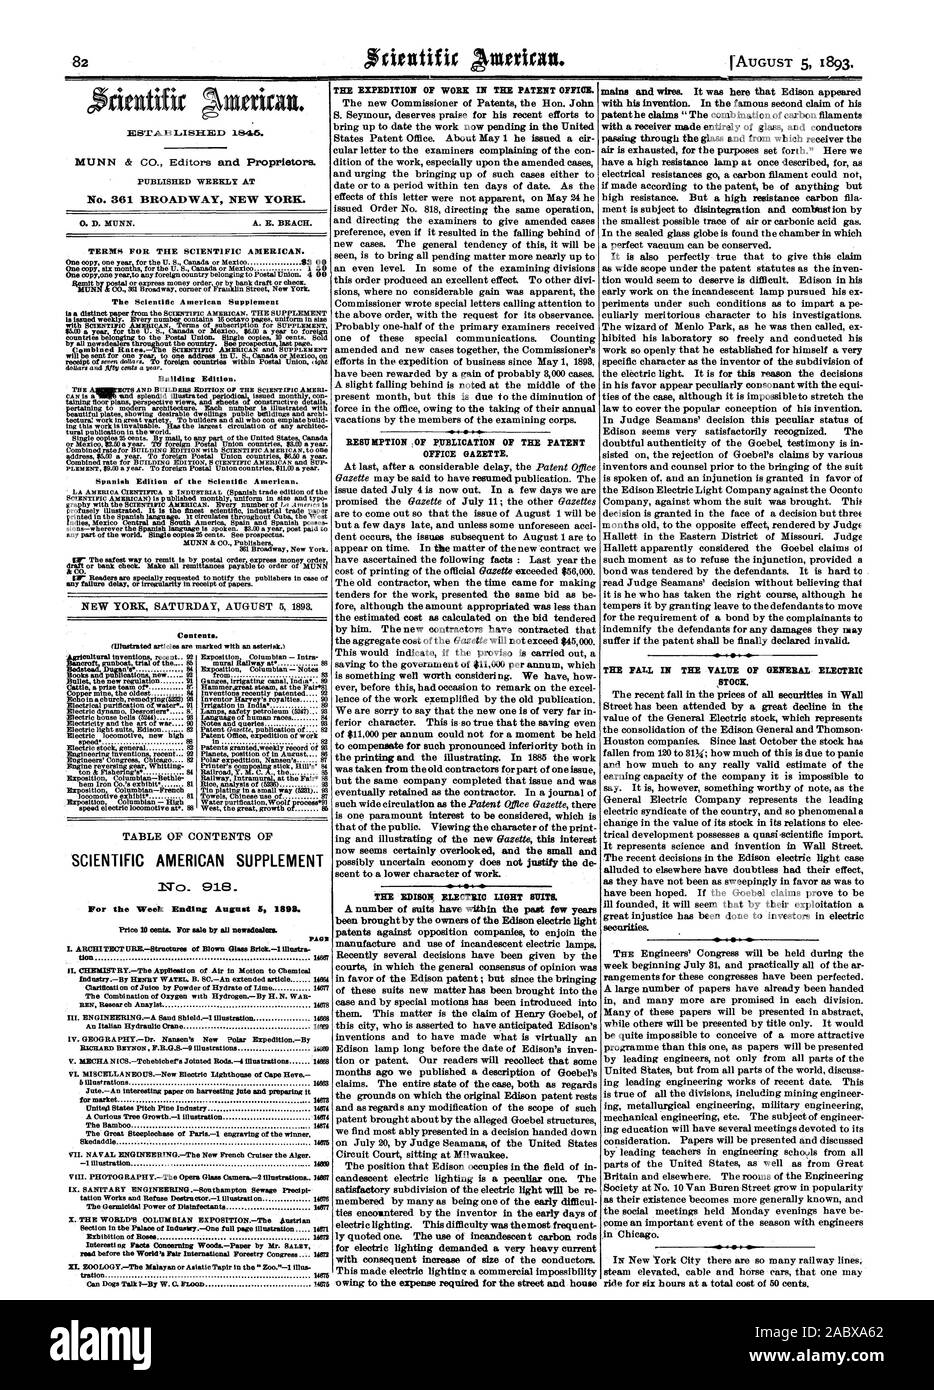 Building Edition. SCIENTIFIC AMERICAN SUPPLEMENT No. 918. For the Week Ending August 59 1893. Price 10 cents. For sale by all newsdealer, 1893-08-05 Stock Photo